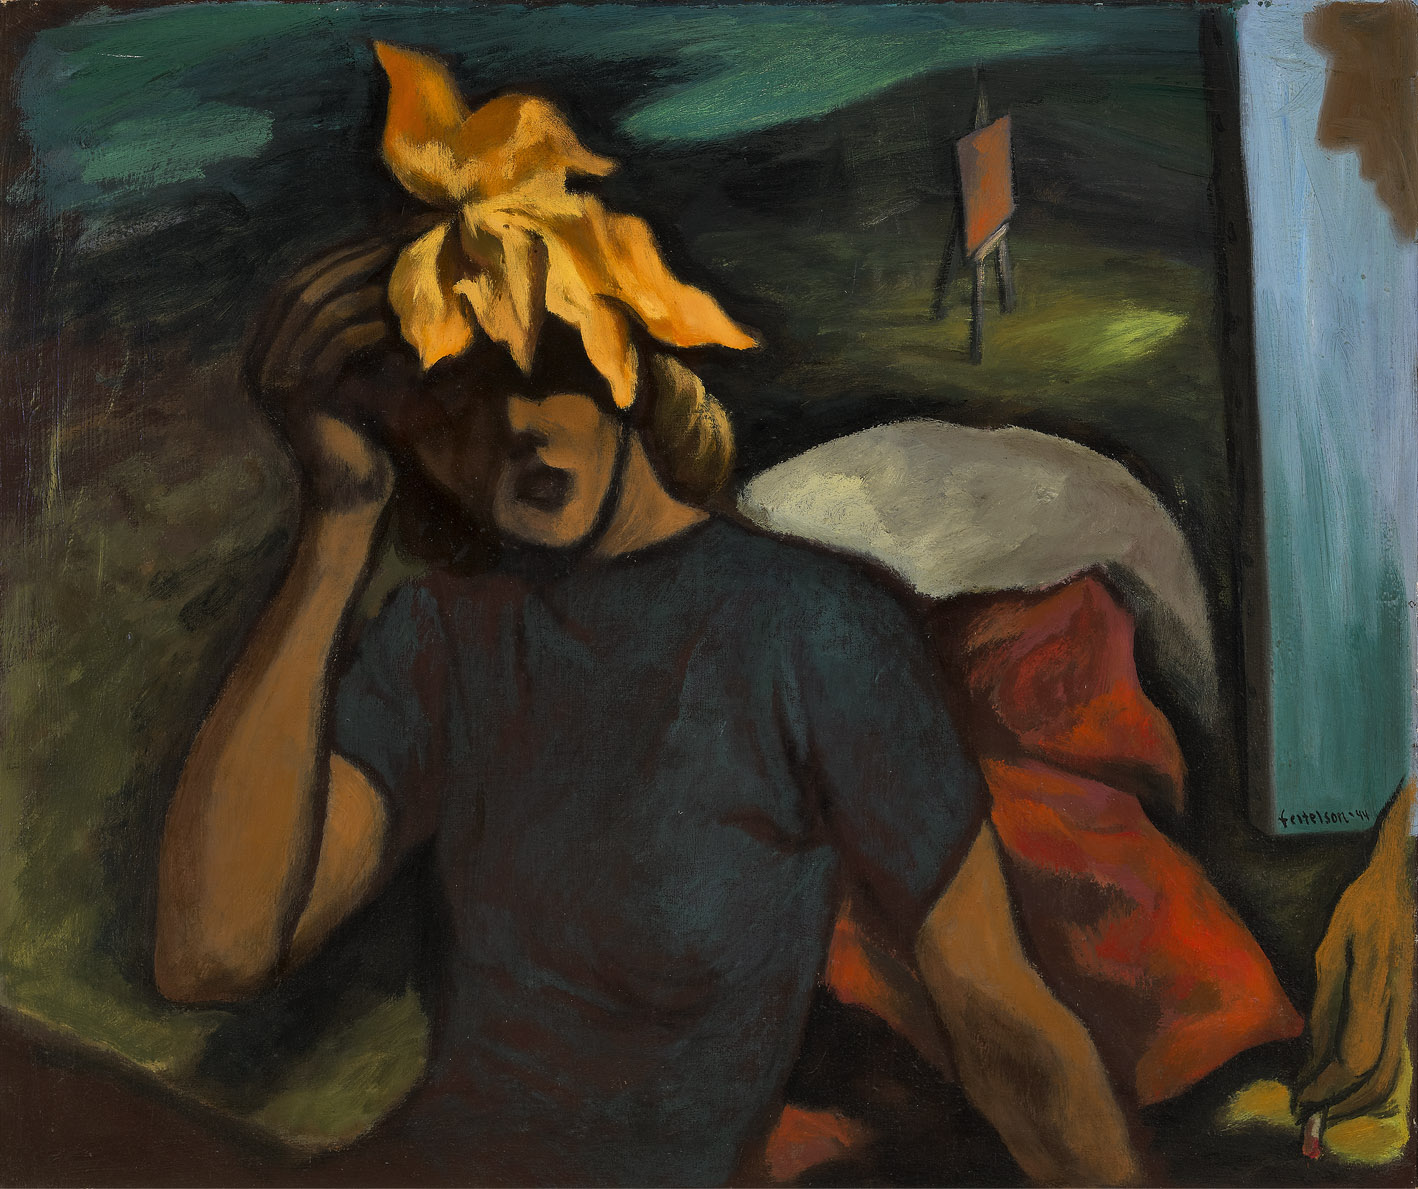 The Leaf , 1944  oil on canvas 35 x 41 inches; 88.9 x 104.1 centimeters